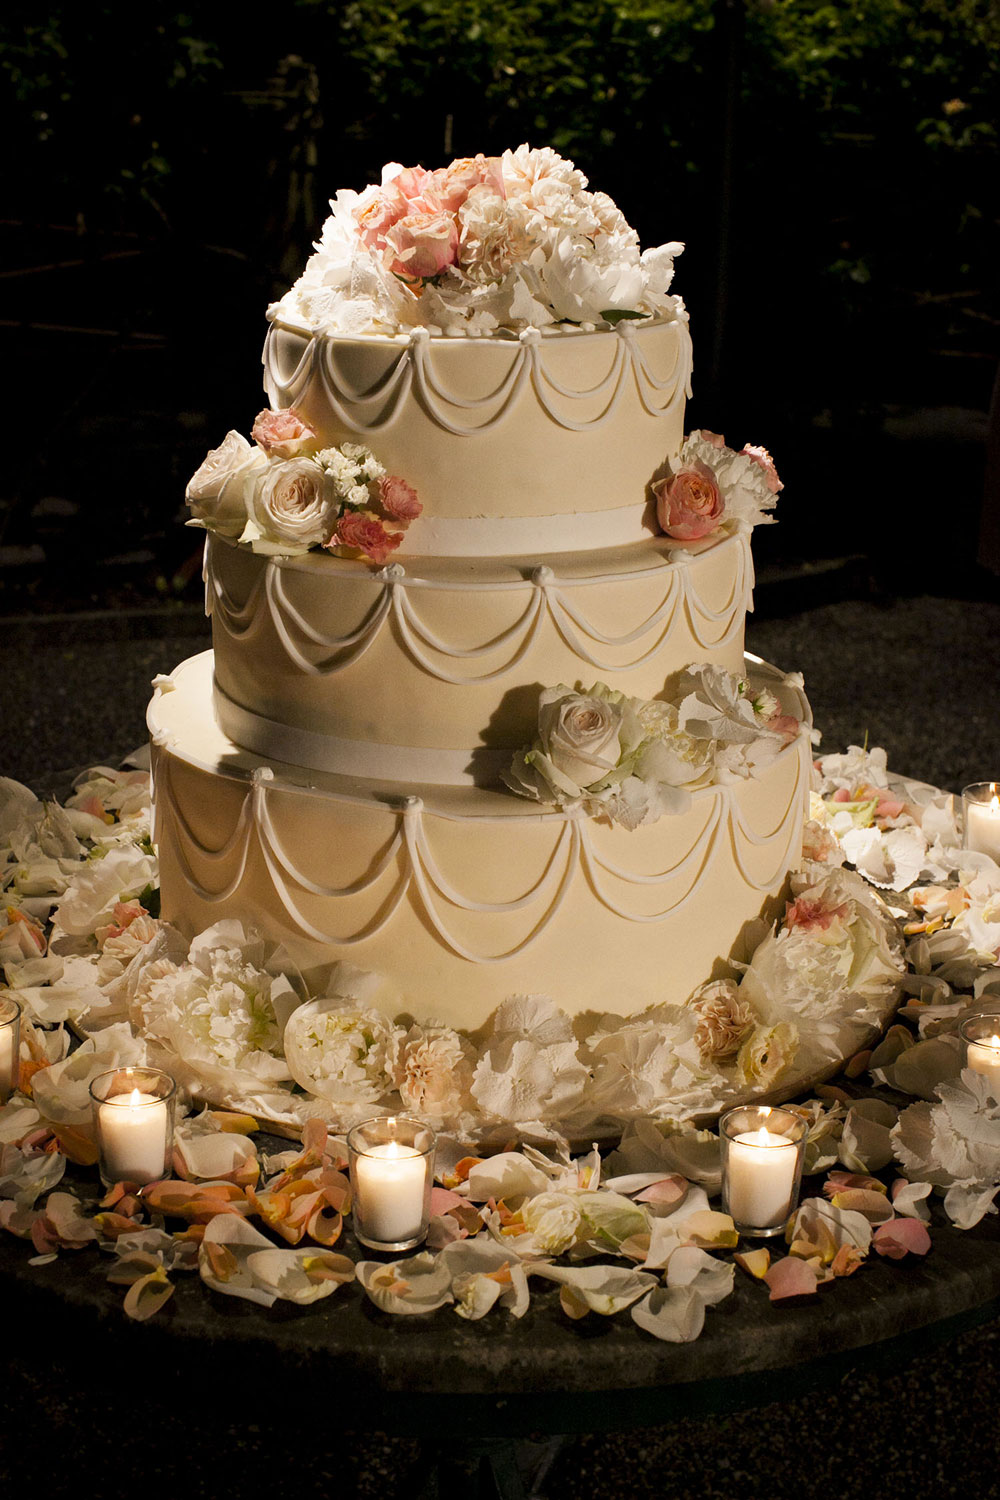 tradition of eating wedding cake on first anniversary sweet inspirations your wedding cake and it 21231